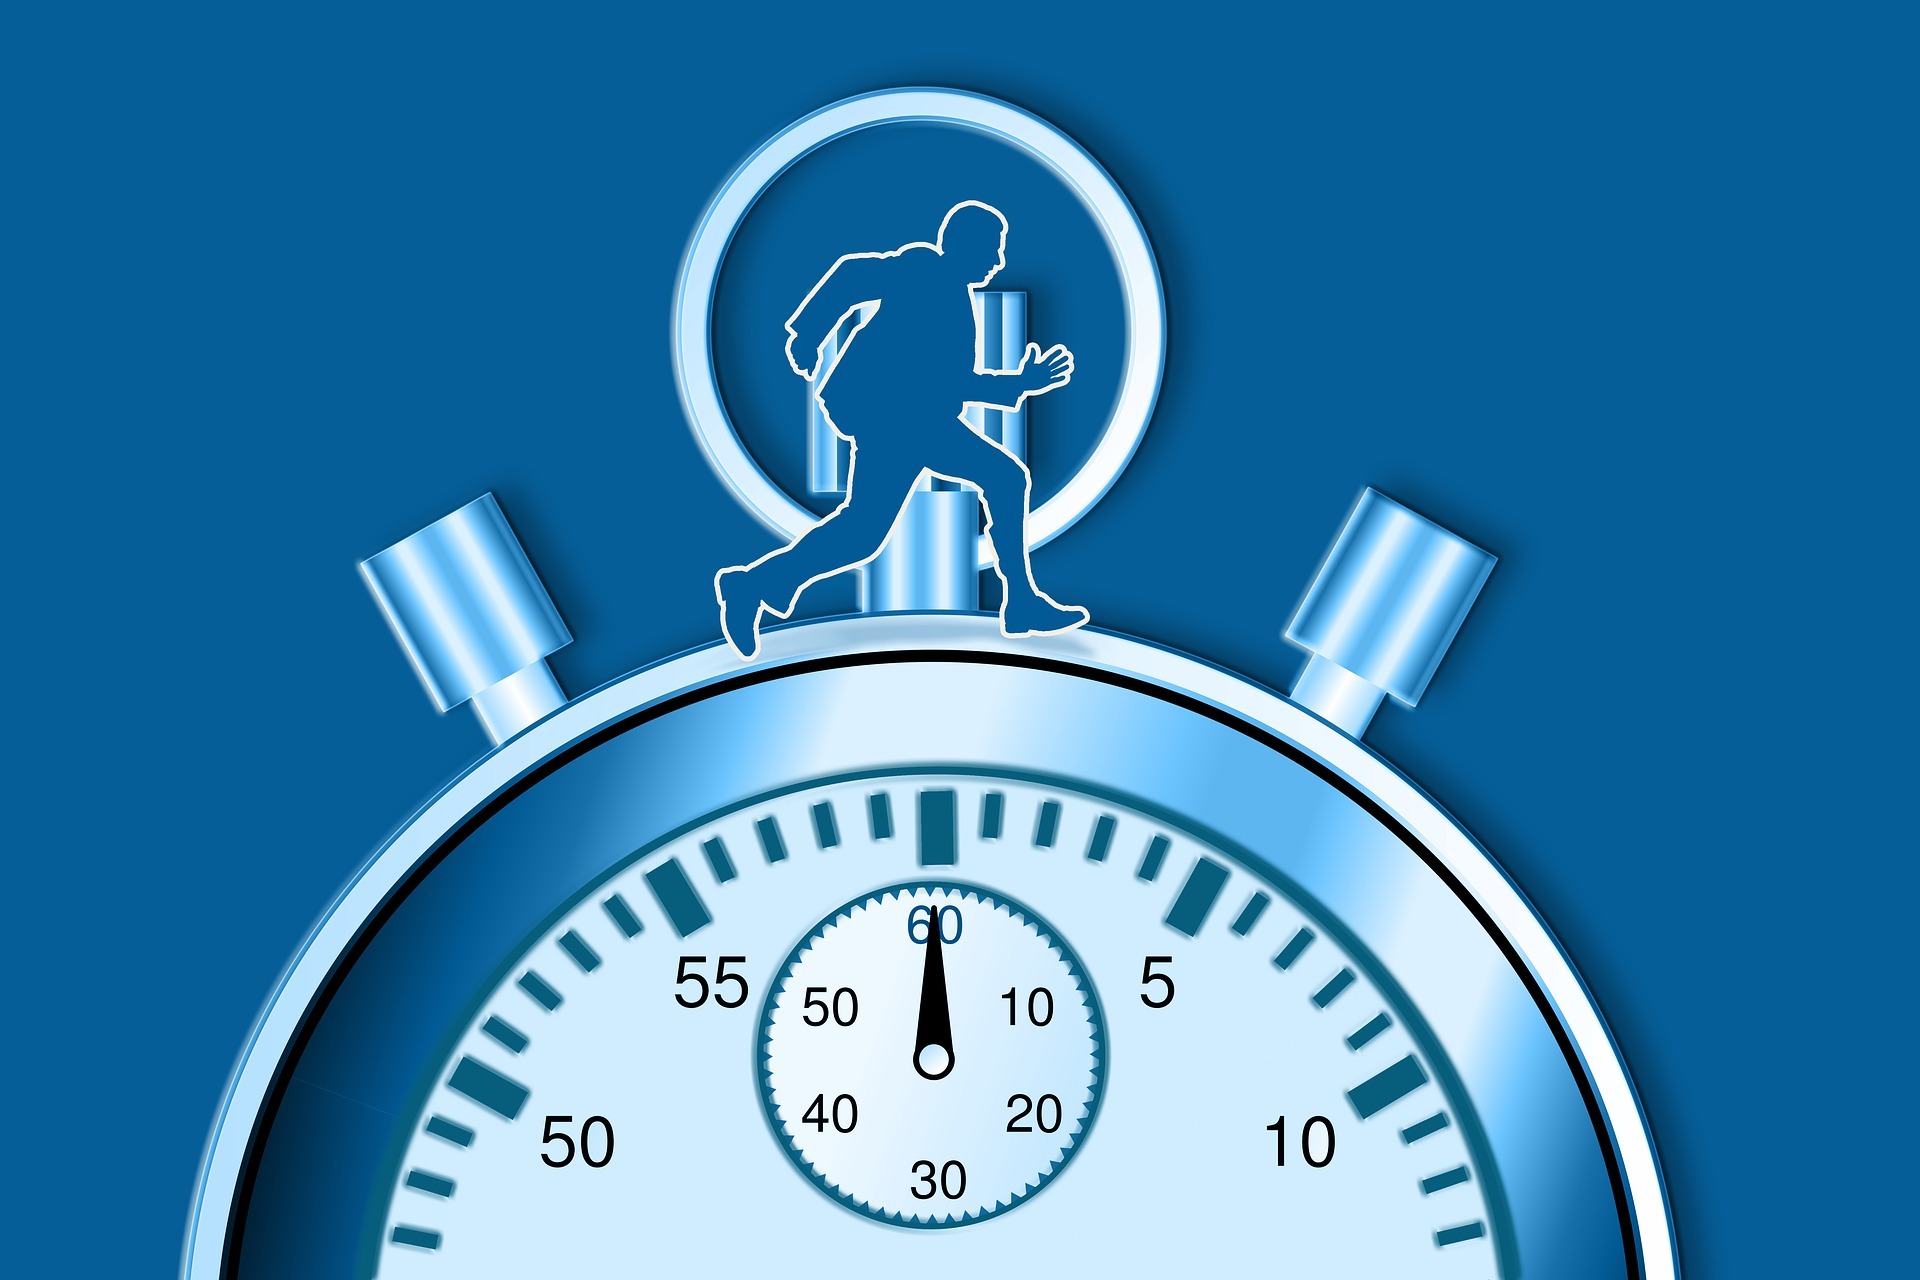 9 Ways Flo can save you 30 Minutes each day - How much is that worth to you?